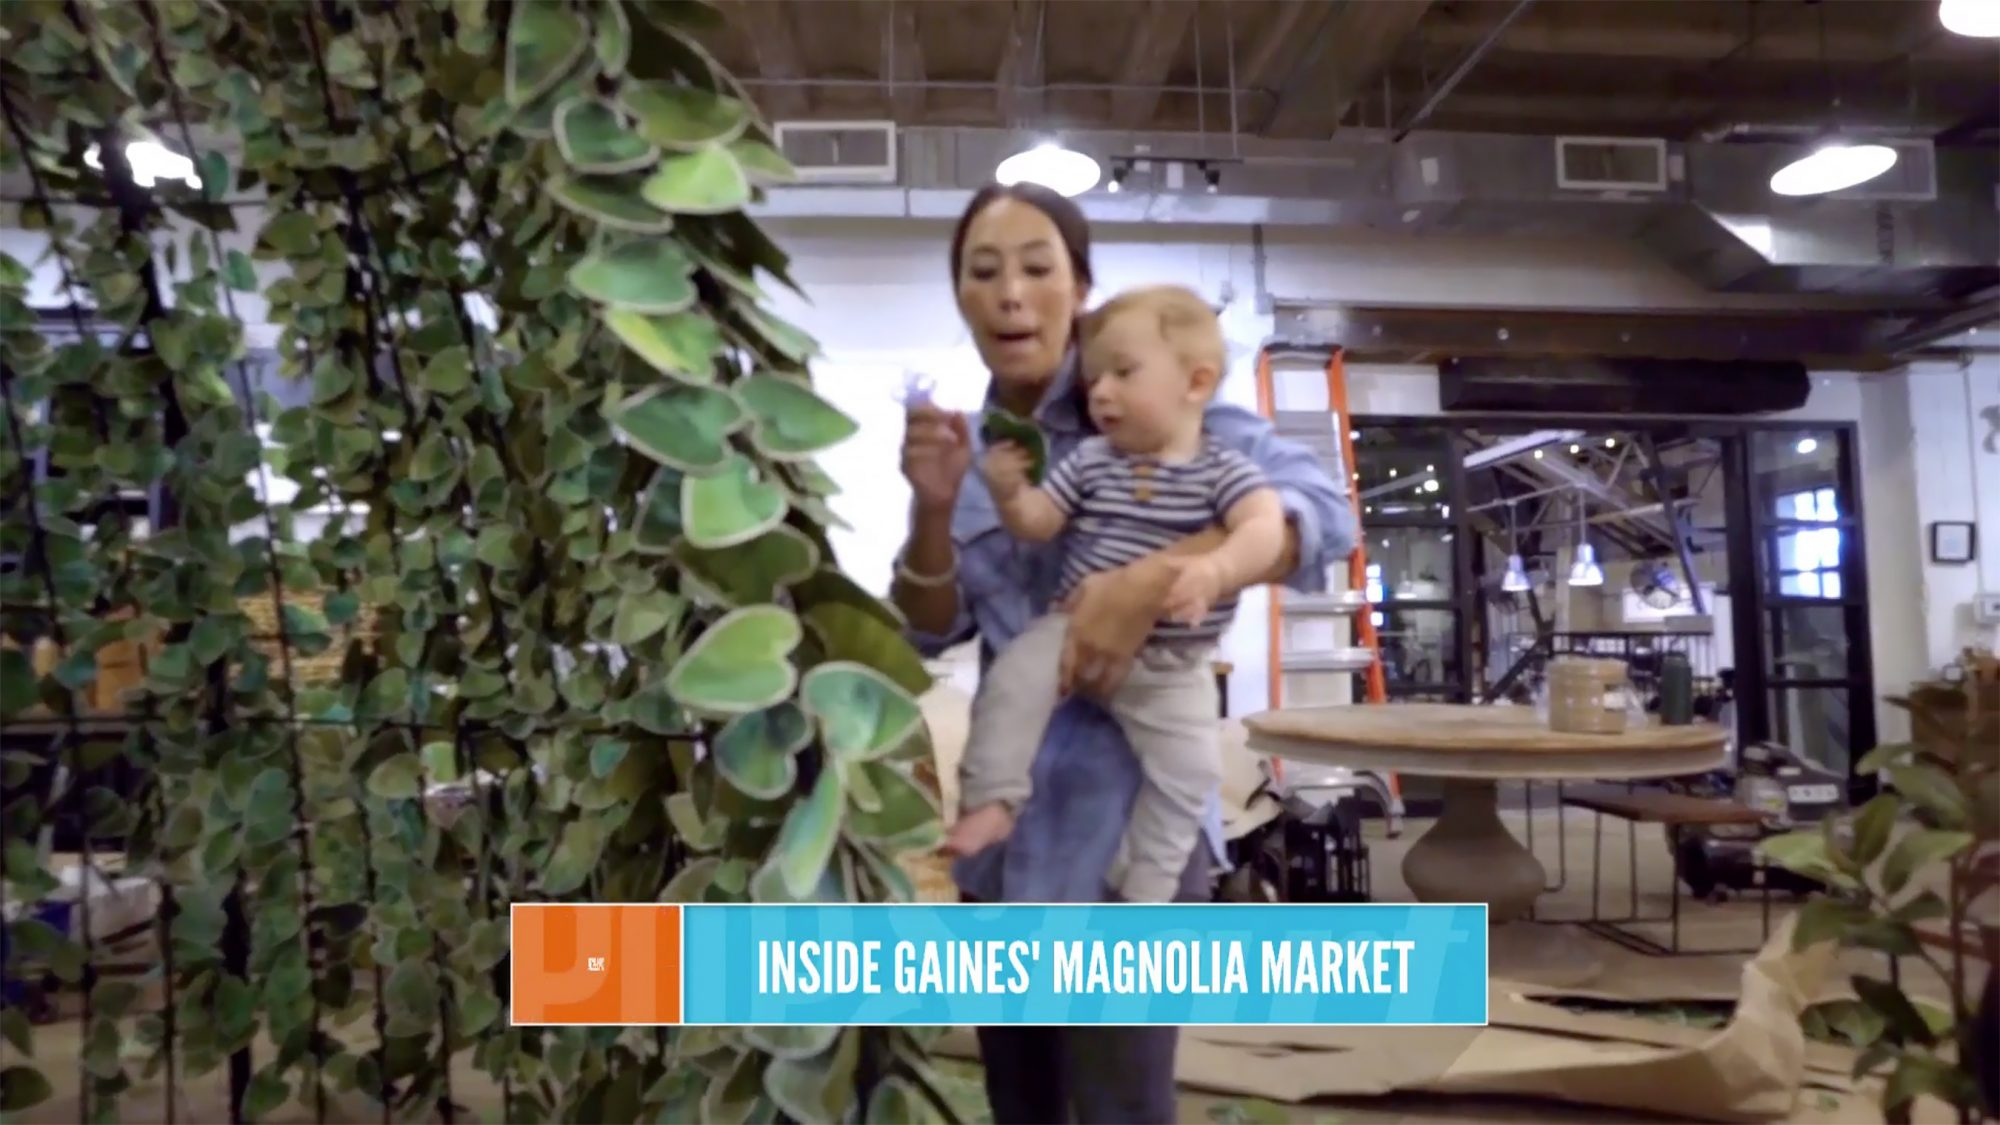 Joanna Gaines explored freedom for the new issue of The Magnolia Journal and created a joint video that explains how she wanted to use the concept for new art installations at Magnolia Market.